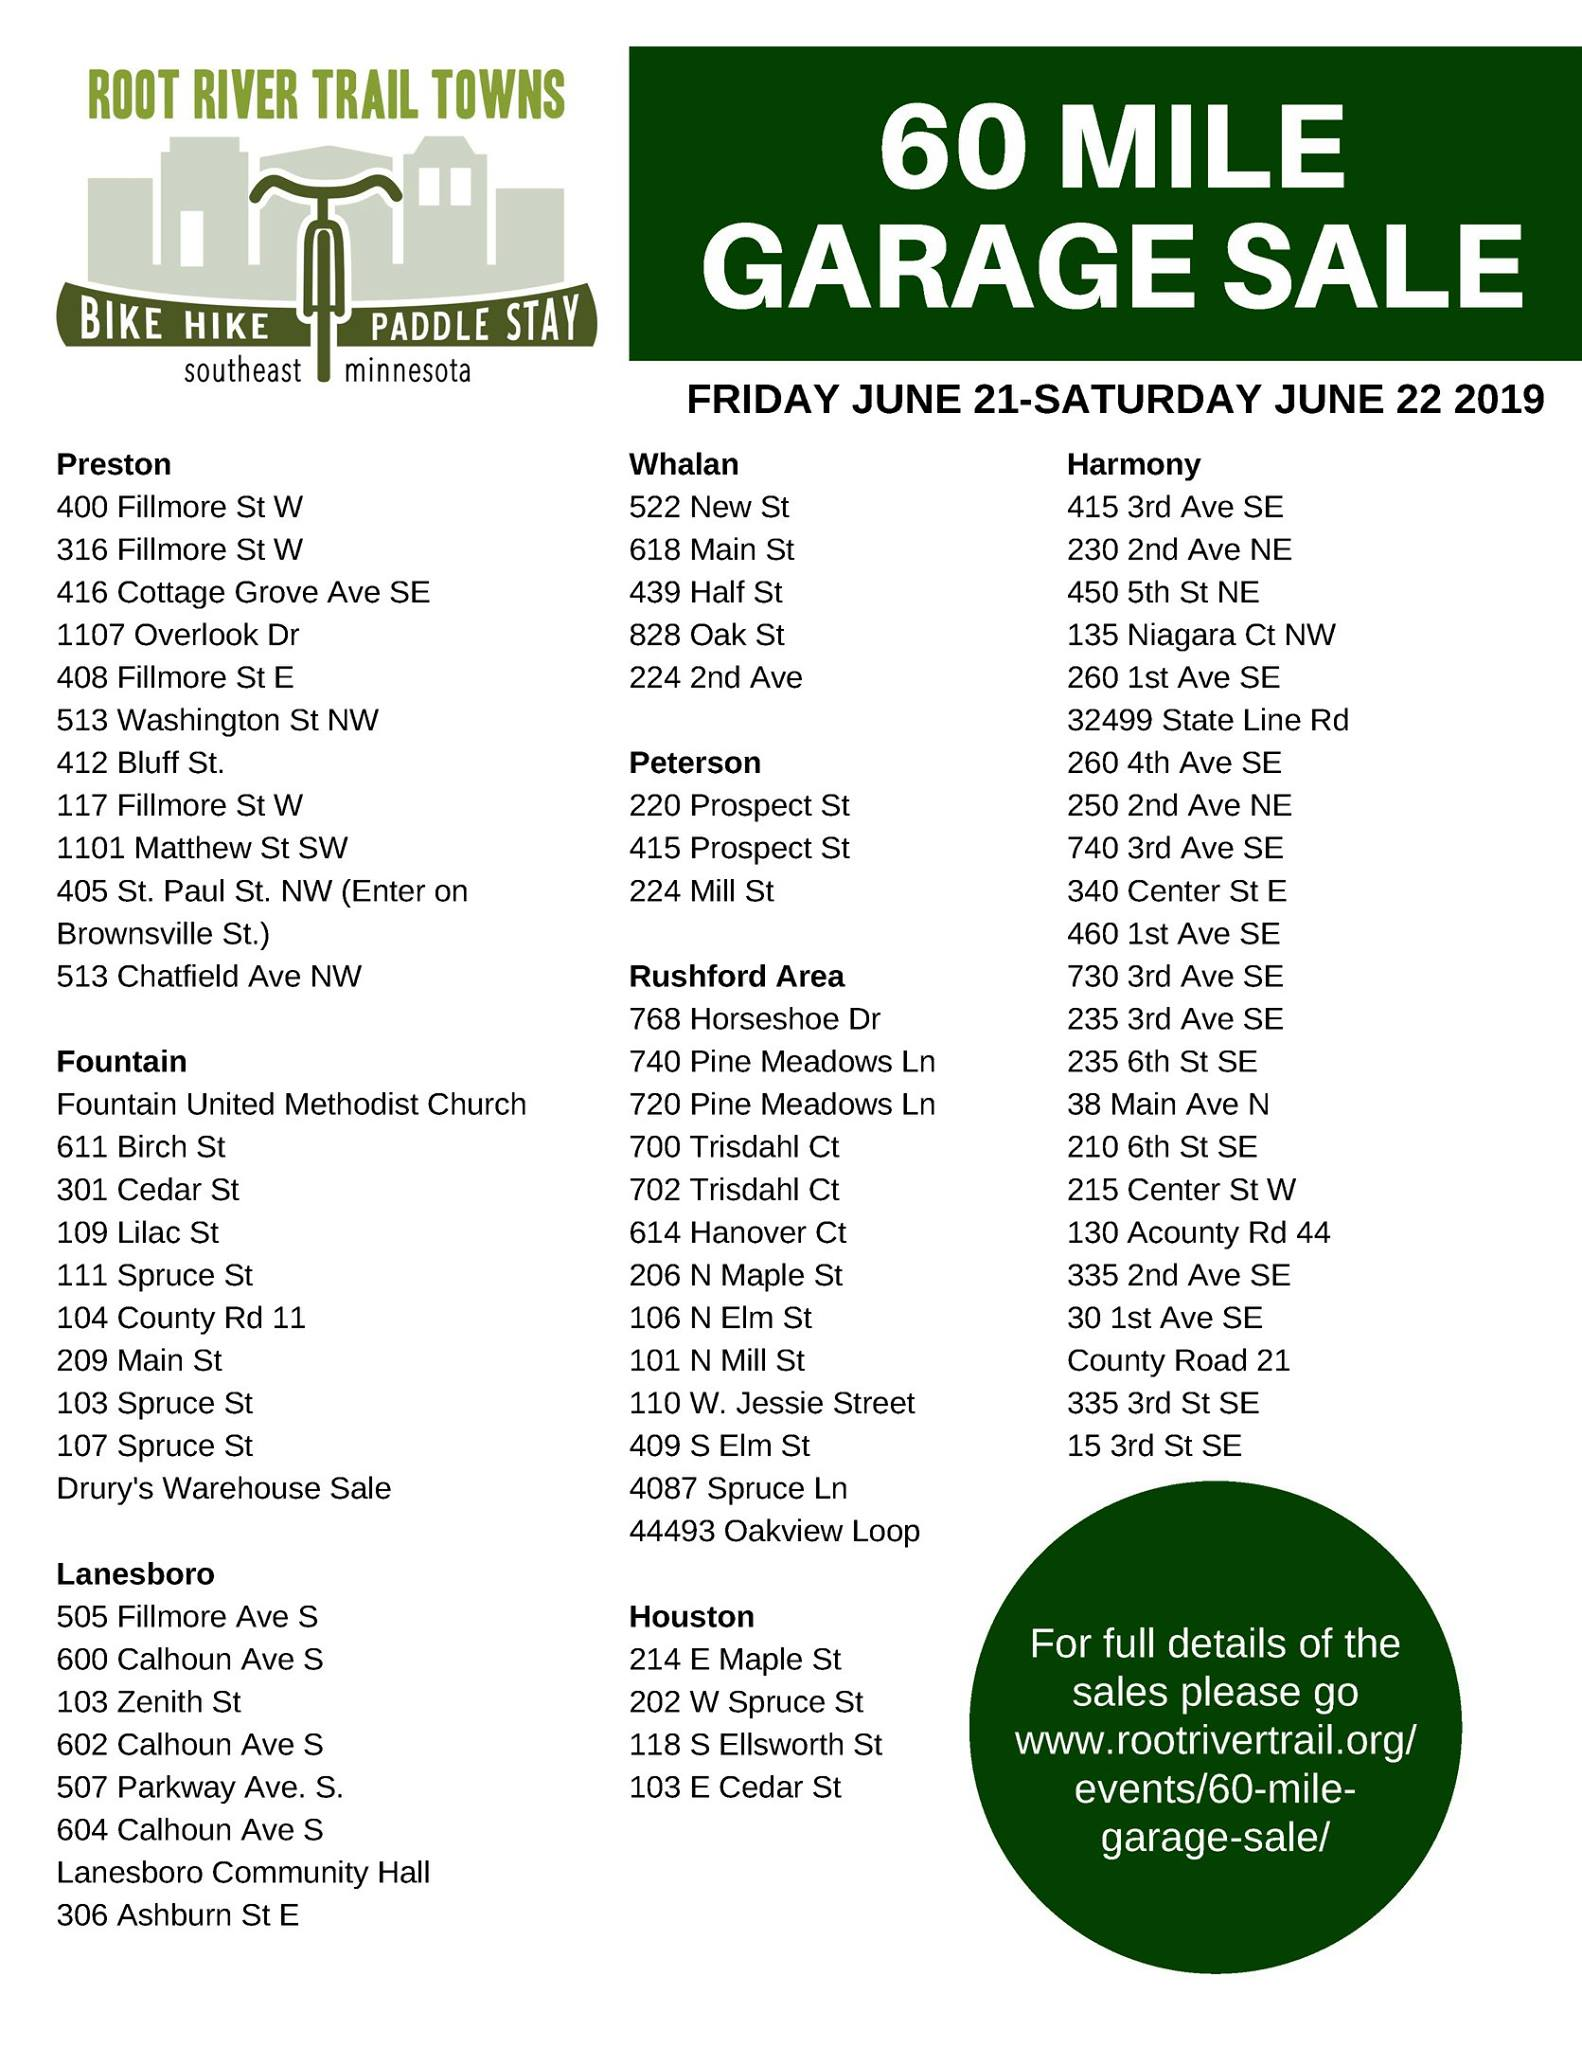 Root River Trail Towns 60-Mile Garage Sale